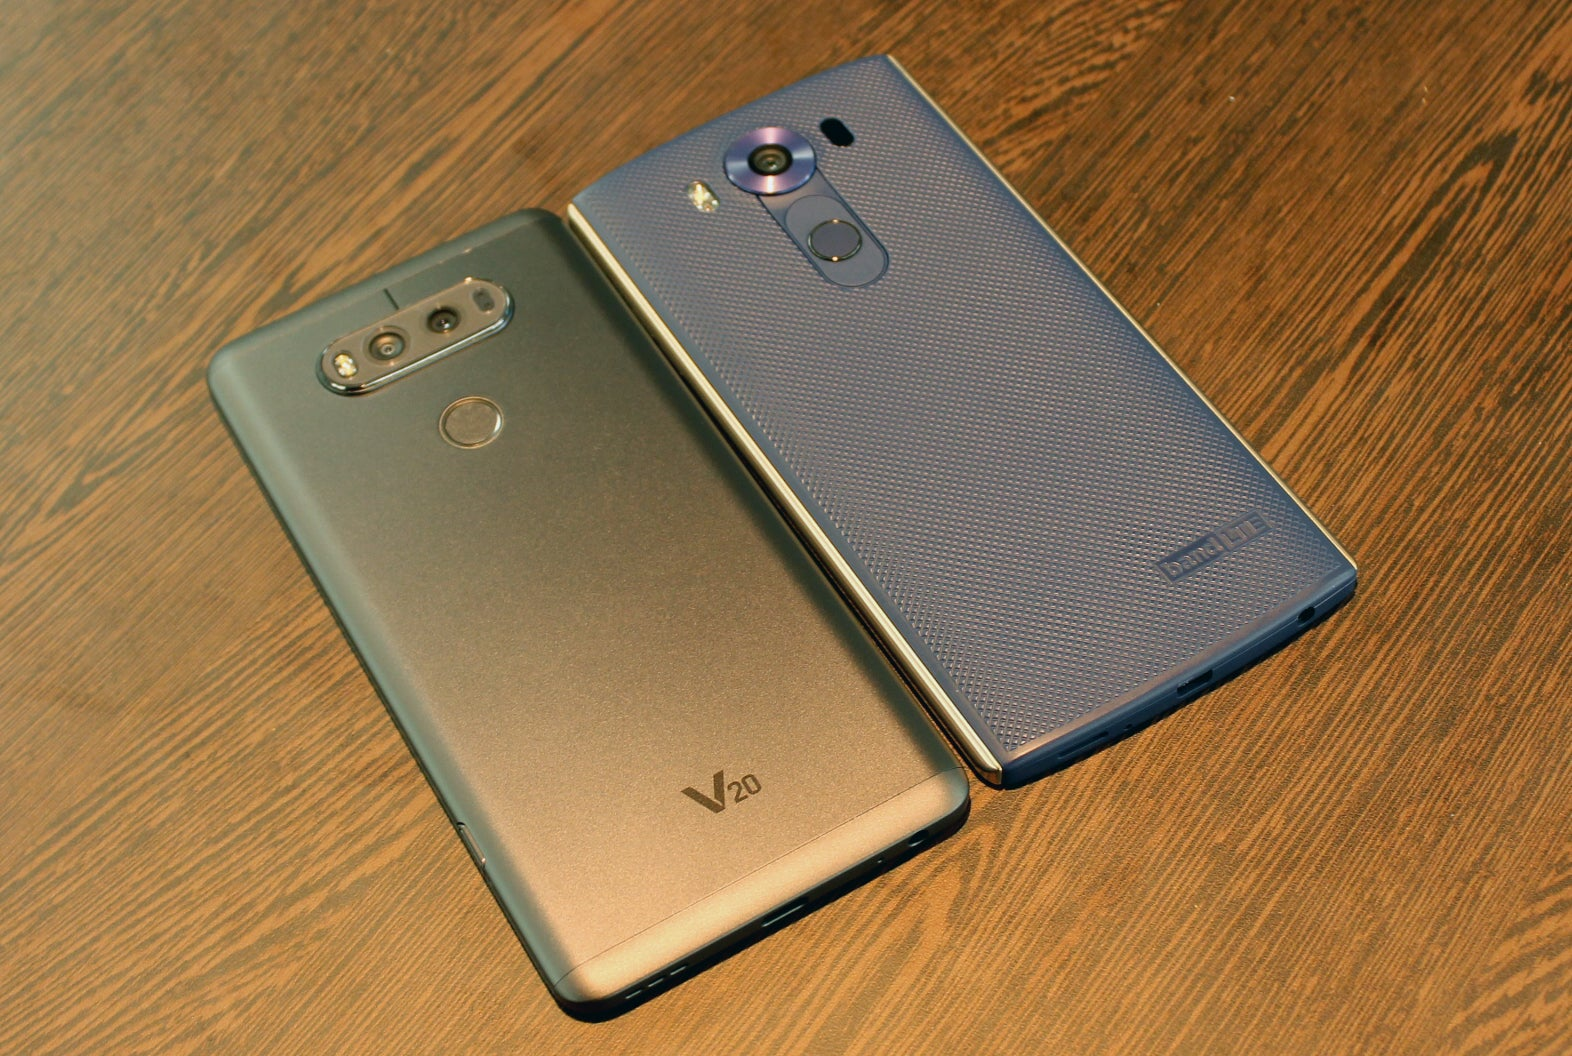 LG V20 hands on: A 5 7-inch phablet for smartphone content